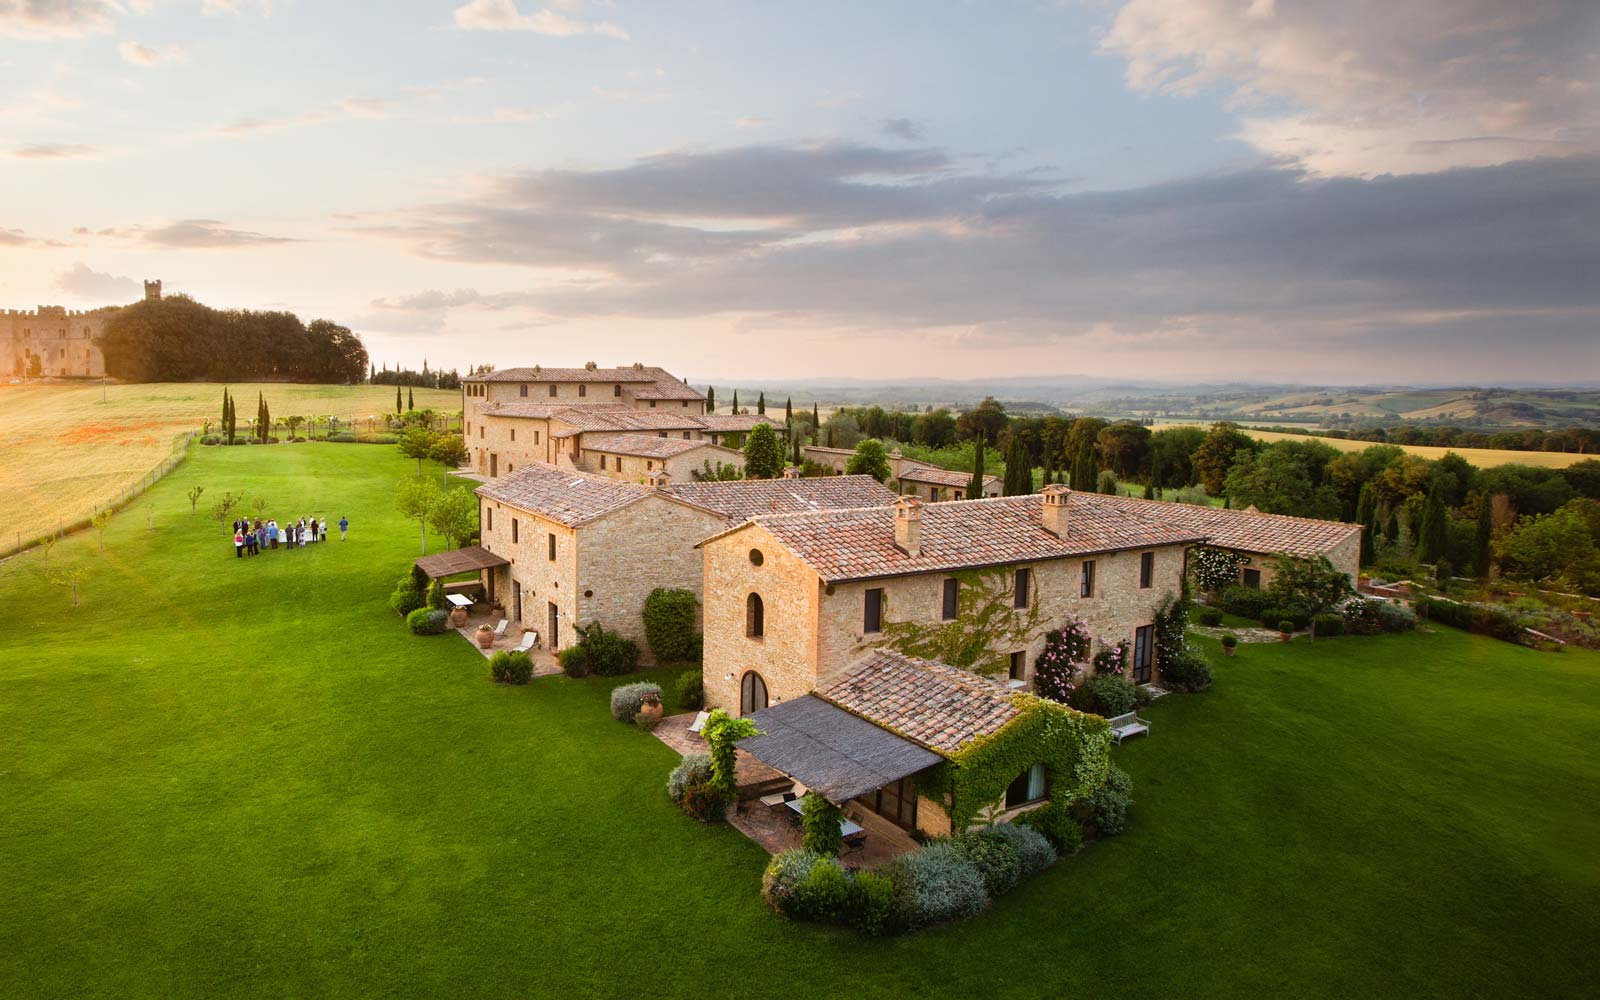 Barack and Michelle Obama's Italian luxury villa is available for rent